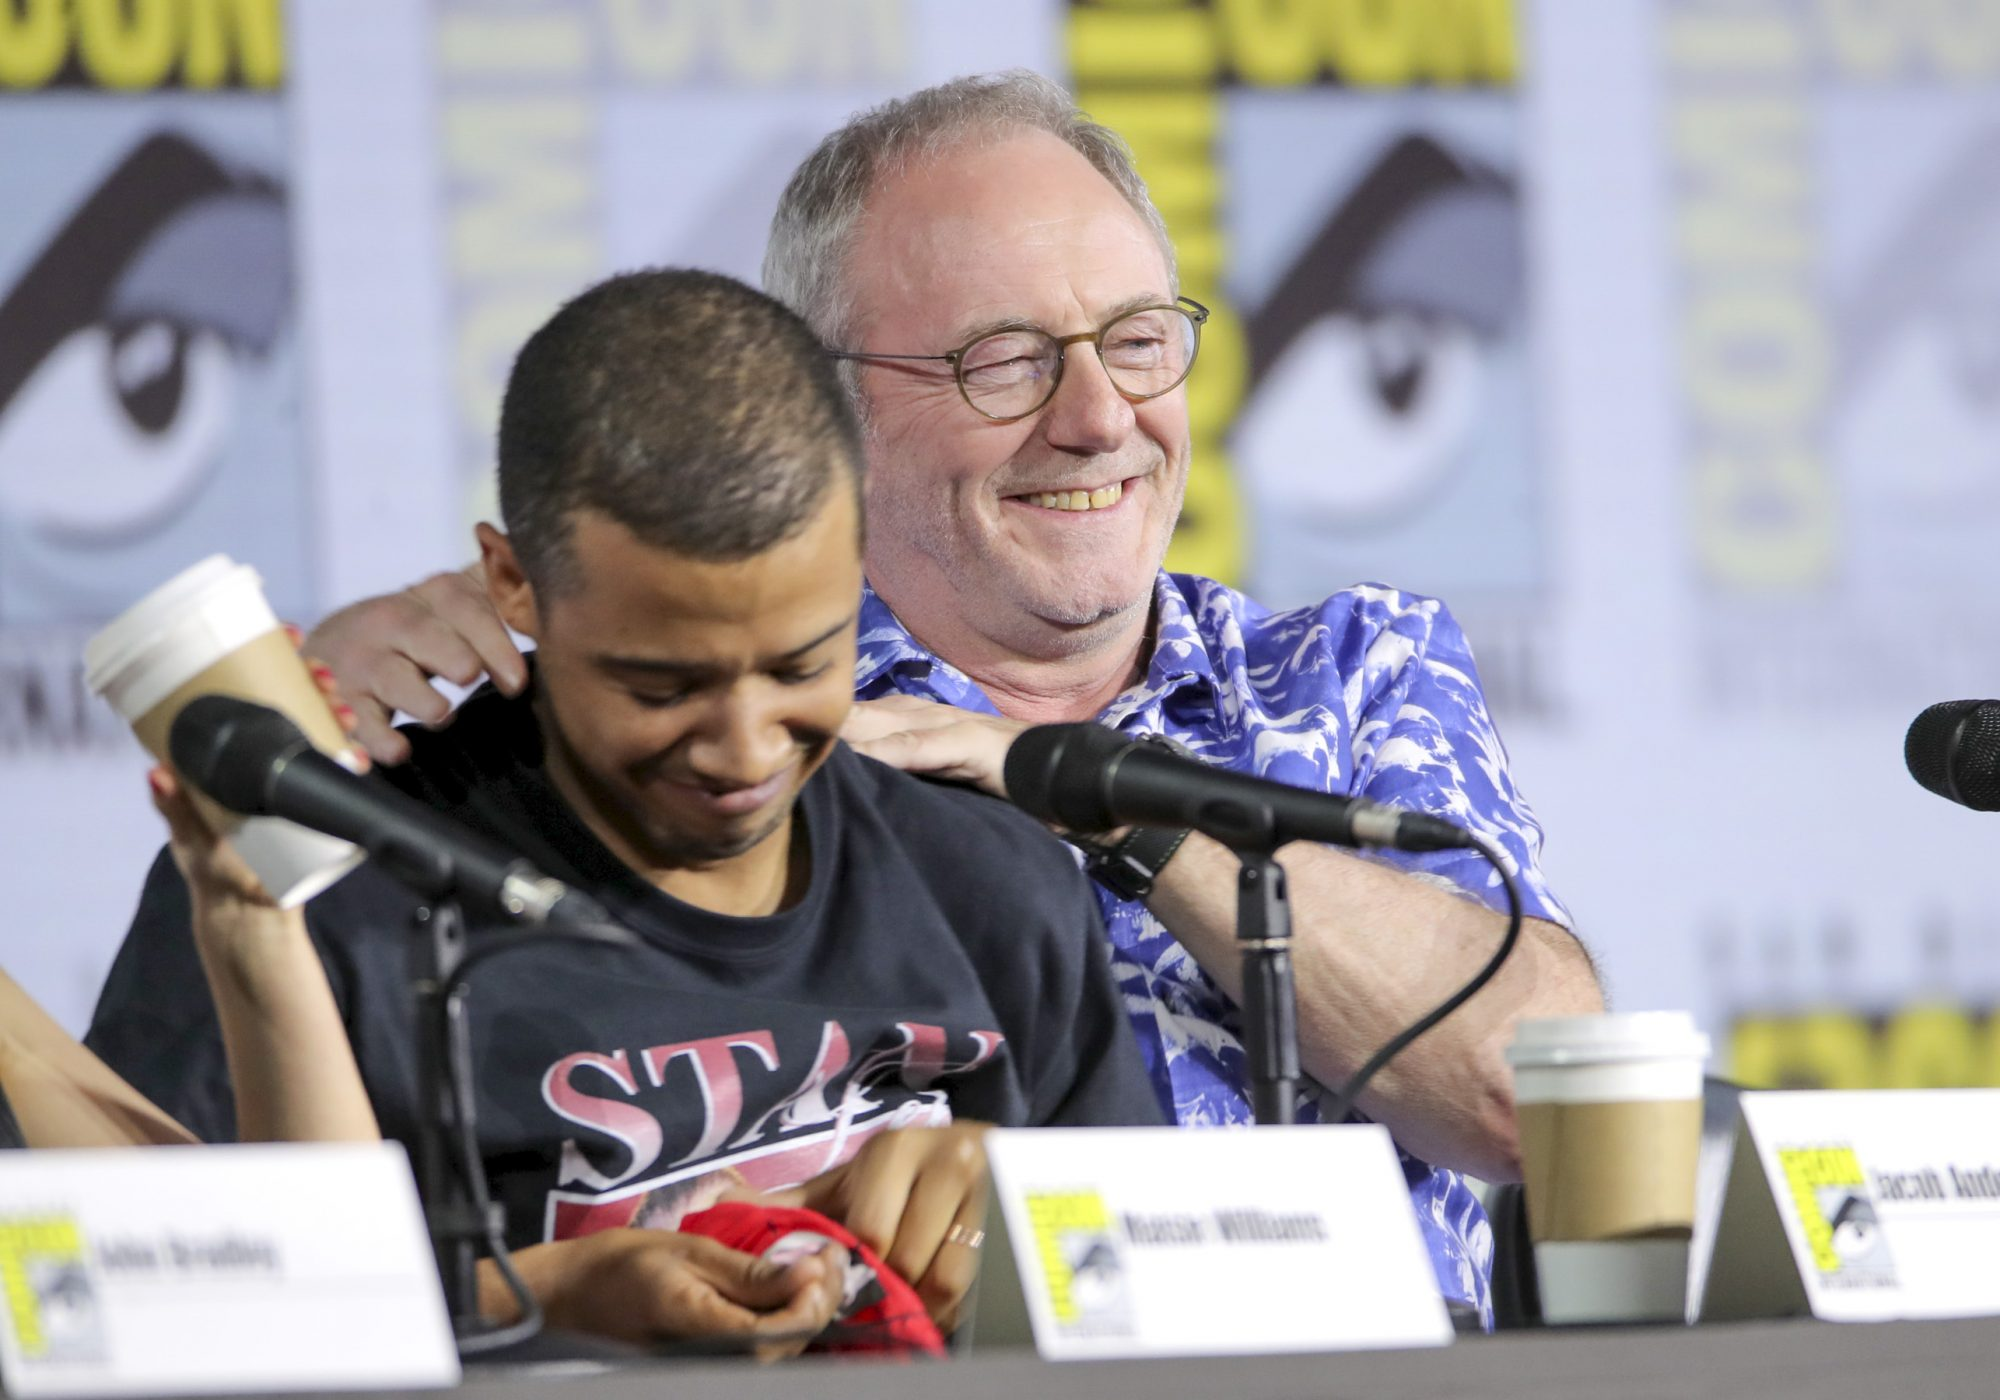 Mandatory Credit: Photo by Chelsea Lauren/Variety/Shutterstock (10341166as) Jacob Anderson and Liam Cunningham 'Game of Thrones' TV show panel, Comic-Con International, San Diego, USA - 19 Jul 2019